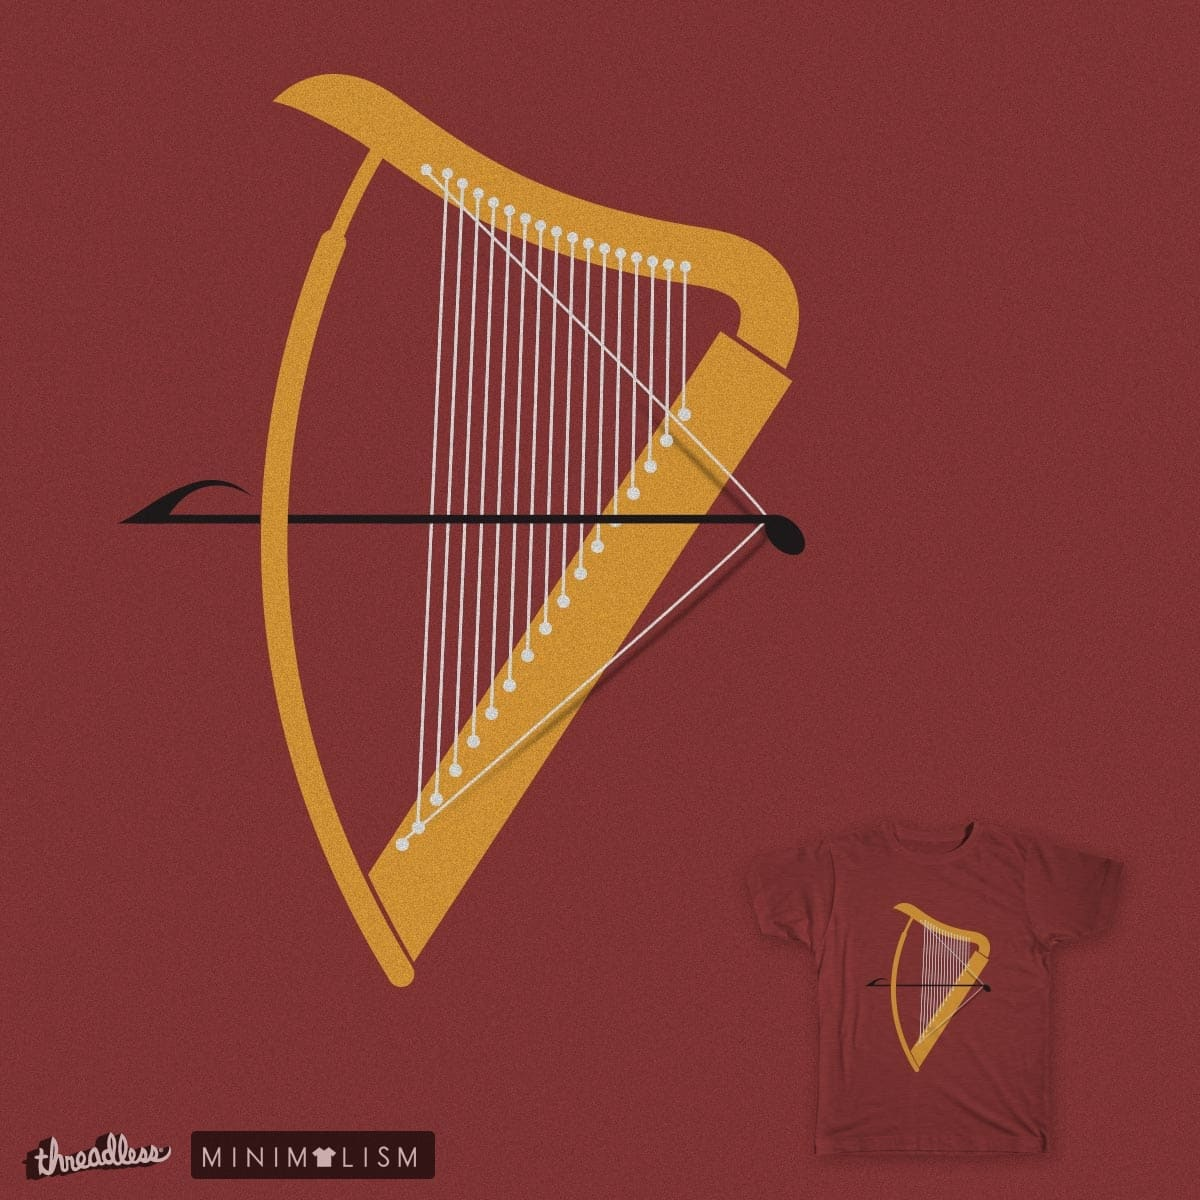 Score Harp And Arrow By Fdegrossi On Threadless